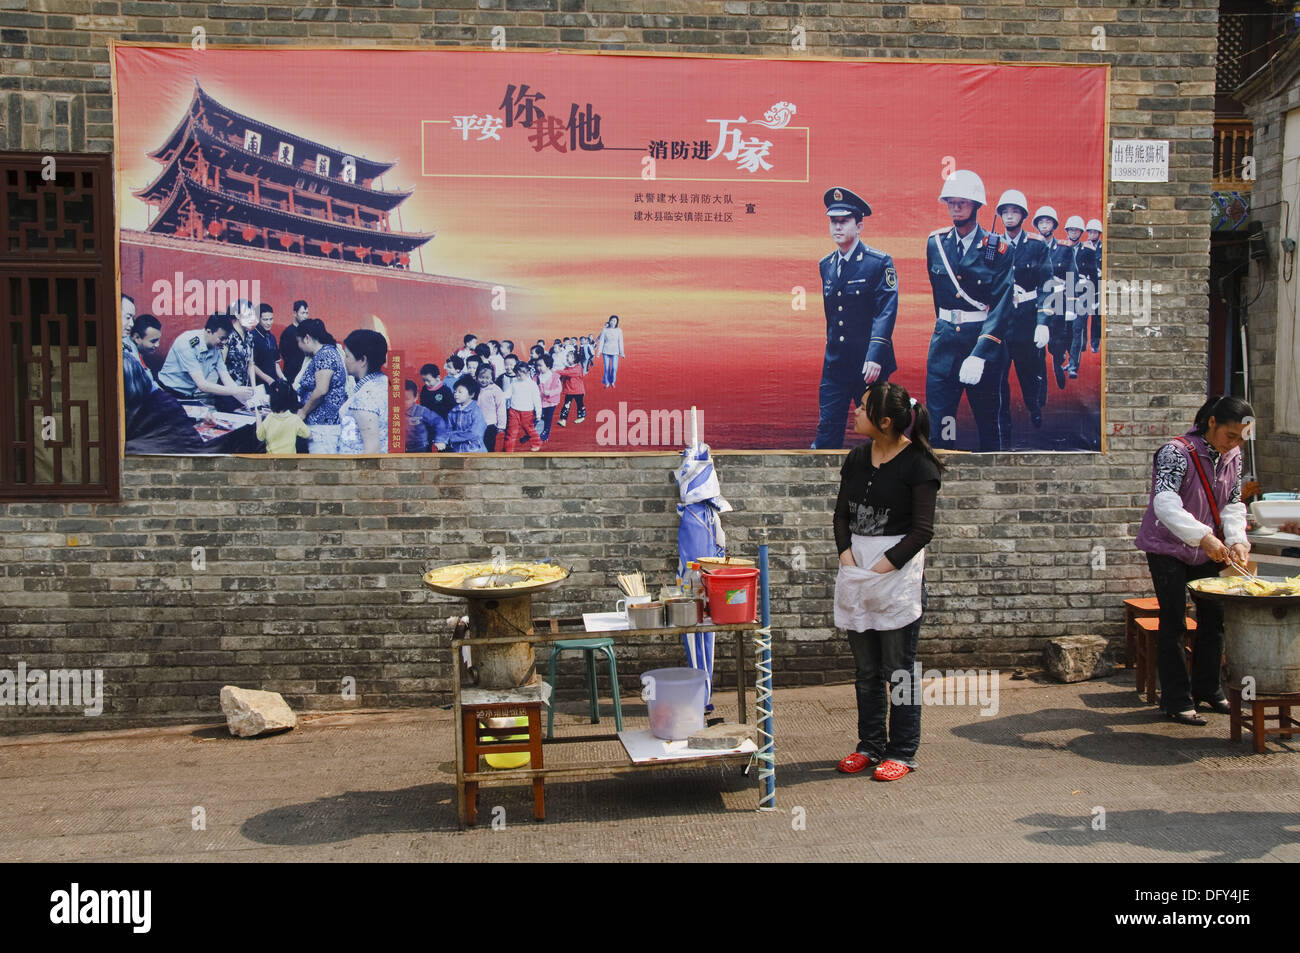 government propaganda mural over street vendor in Jianshui China - Stock Image